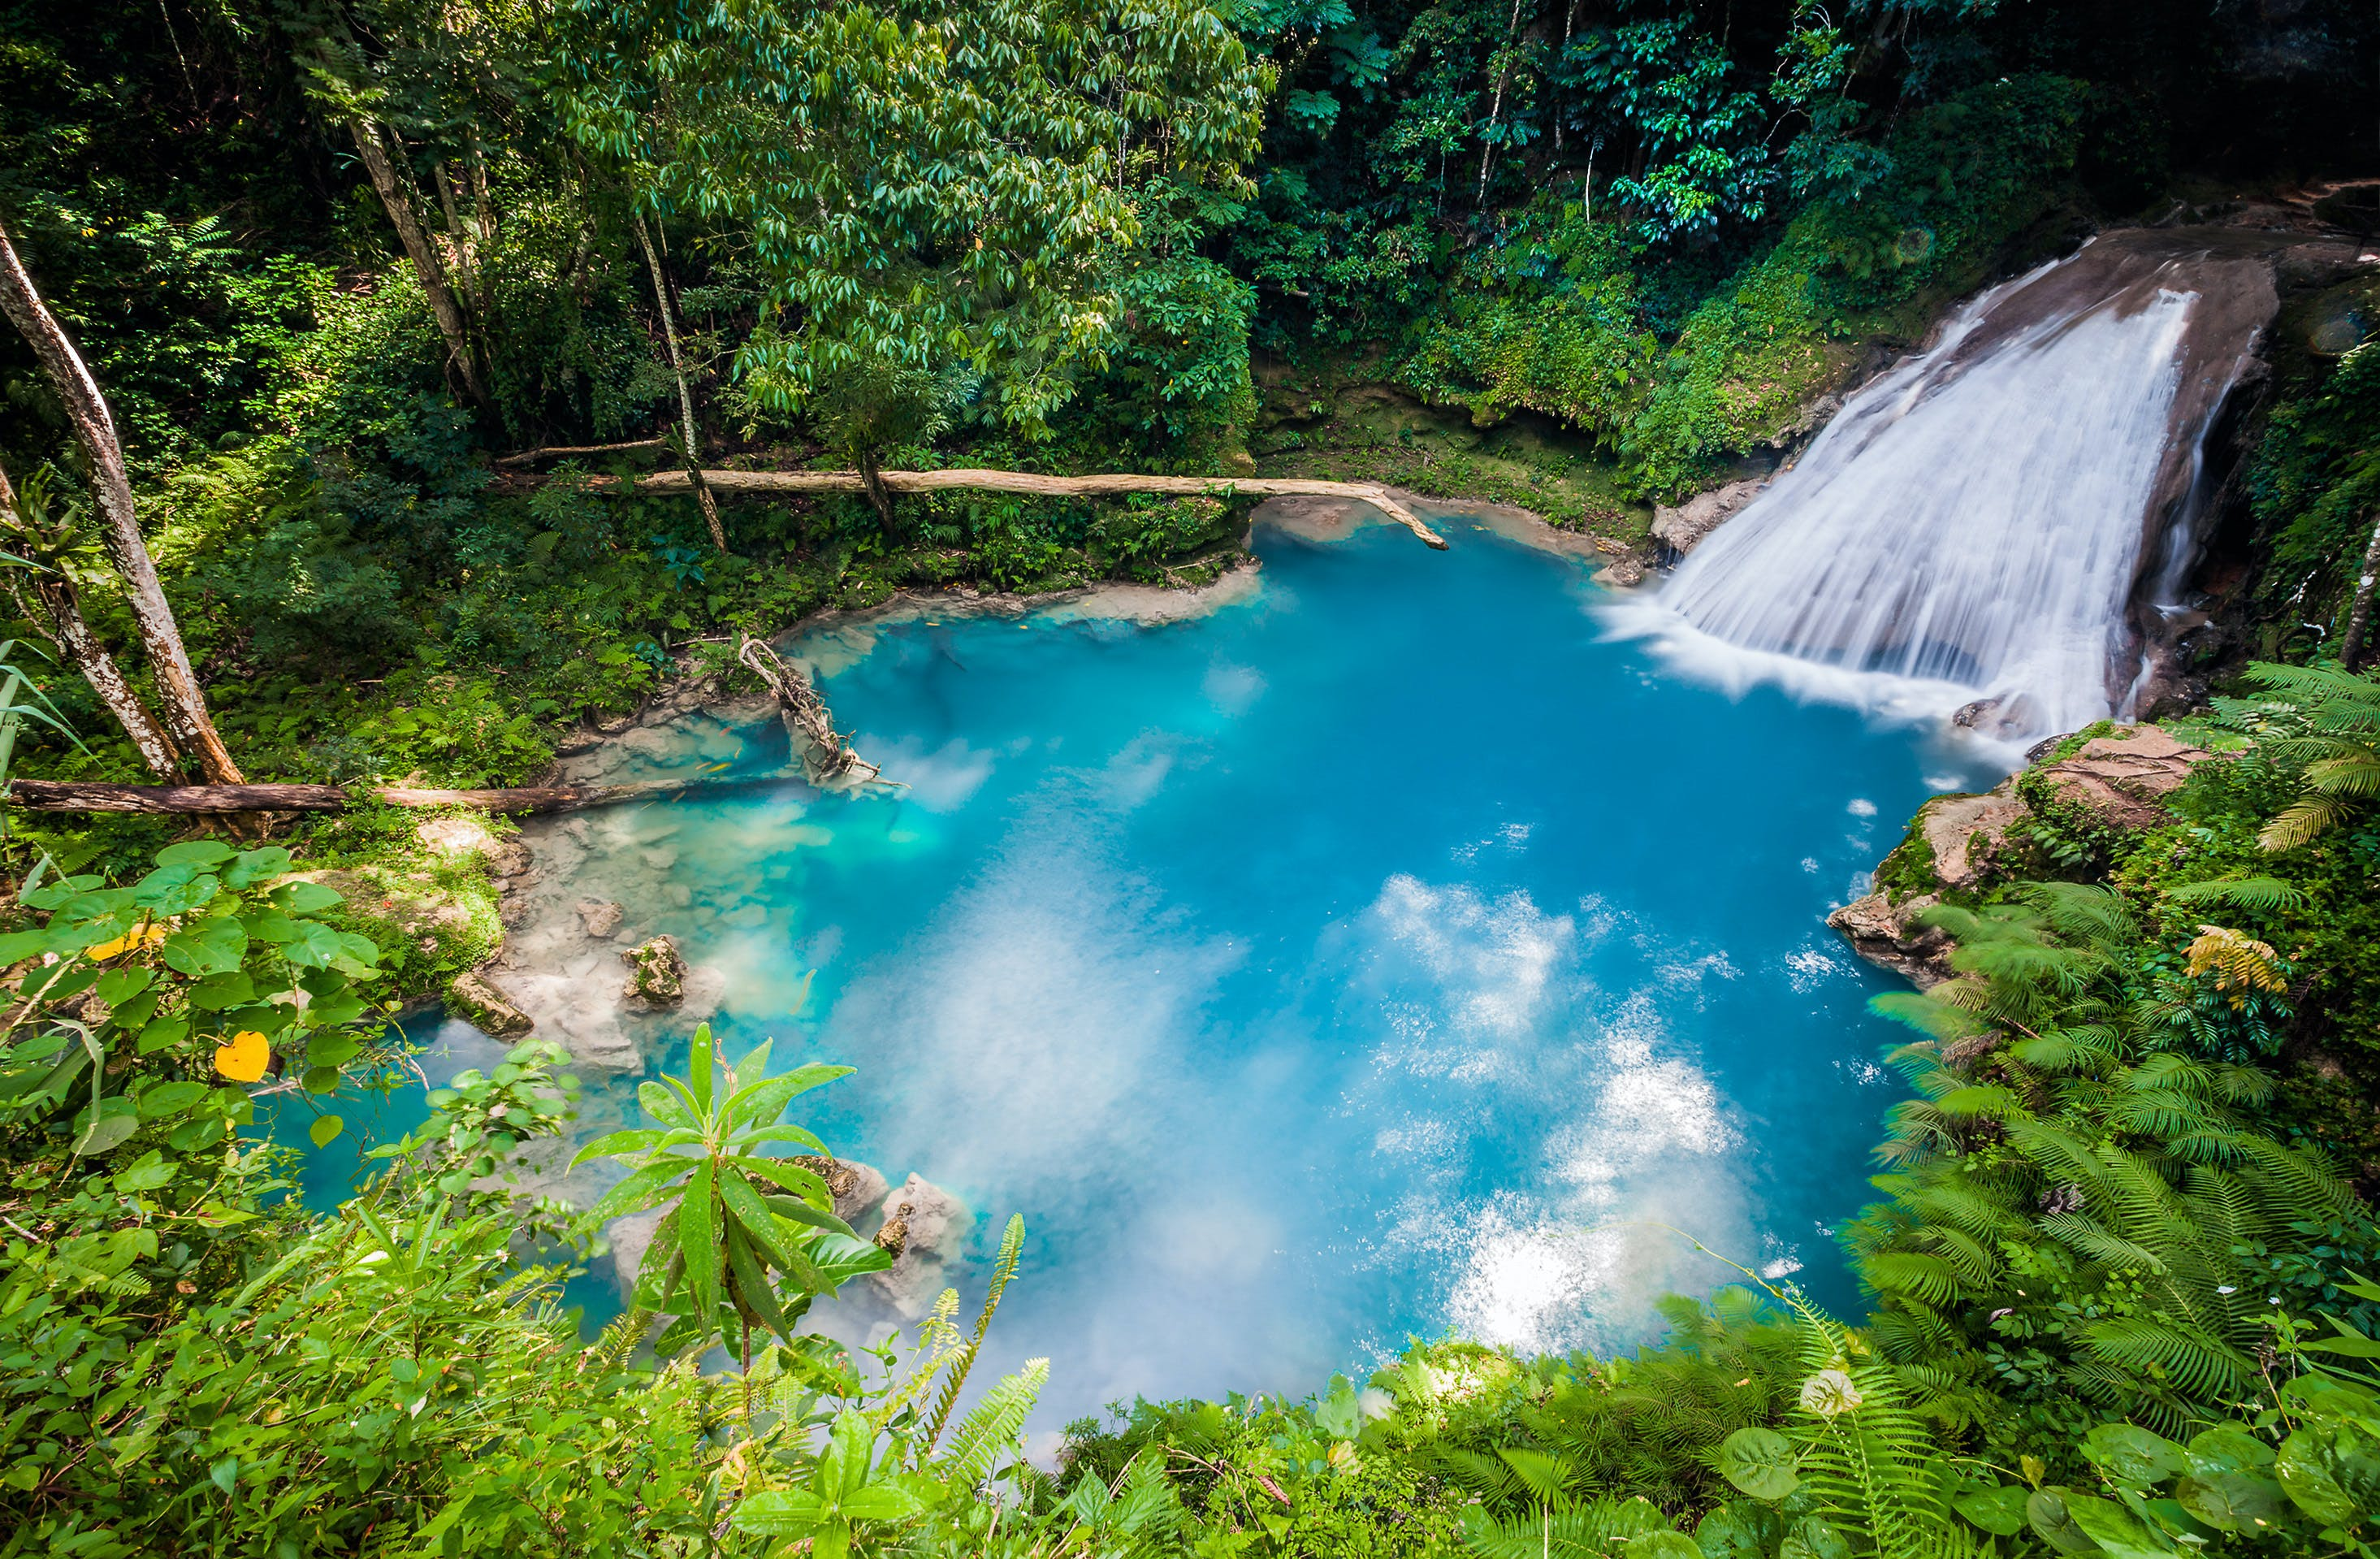 The Blue Hole Waterfall in Ocho Rios is stunning and still considered a hidden gem to most travelers.